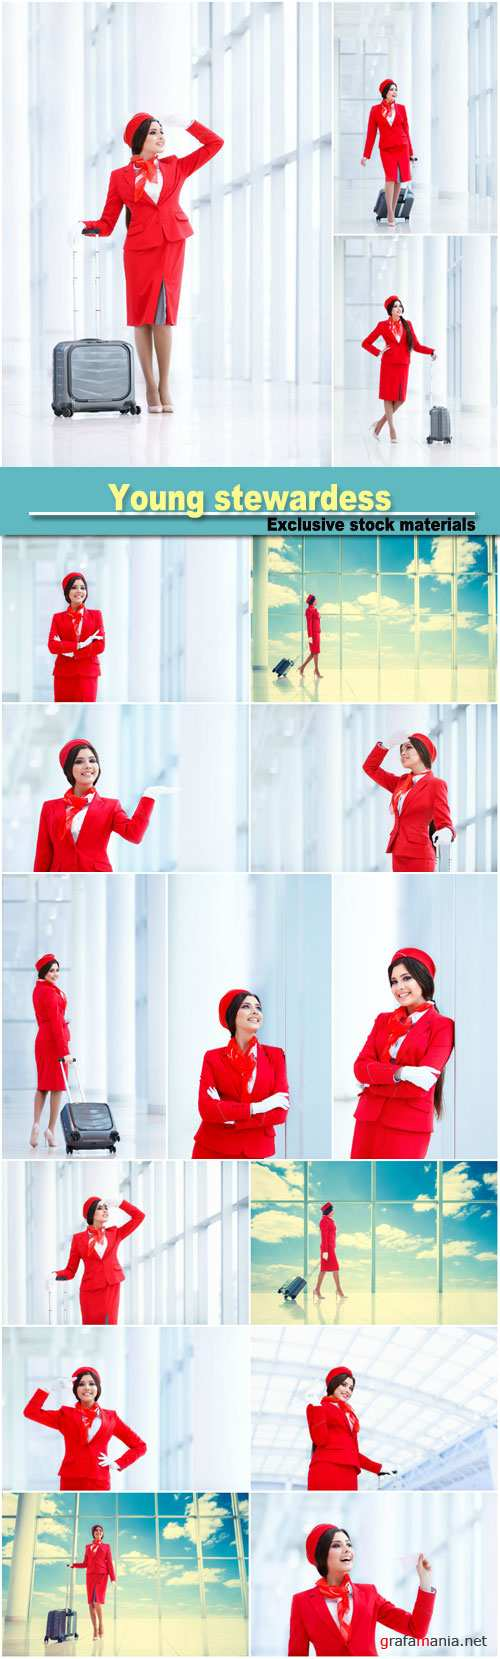 Young stewardess with a suitcase at airport